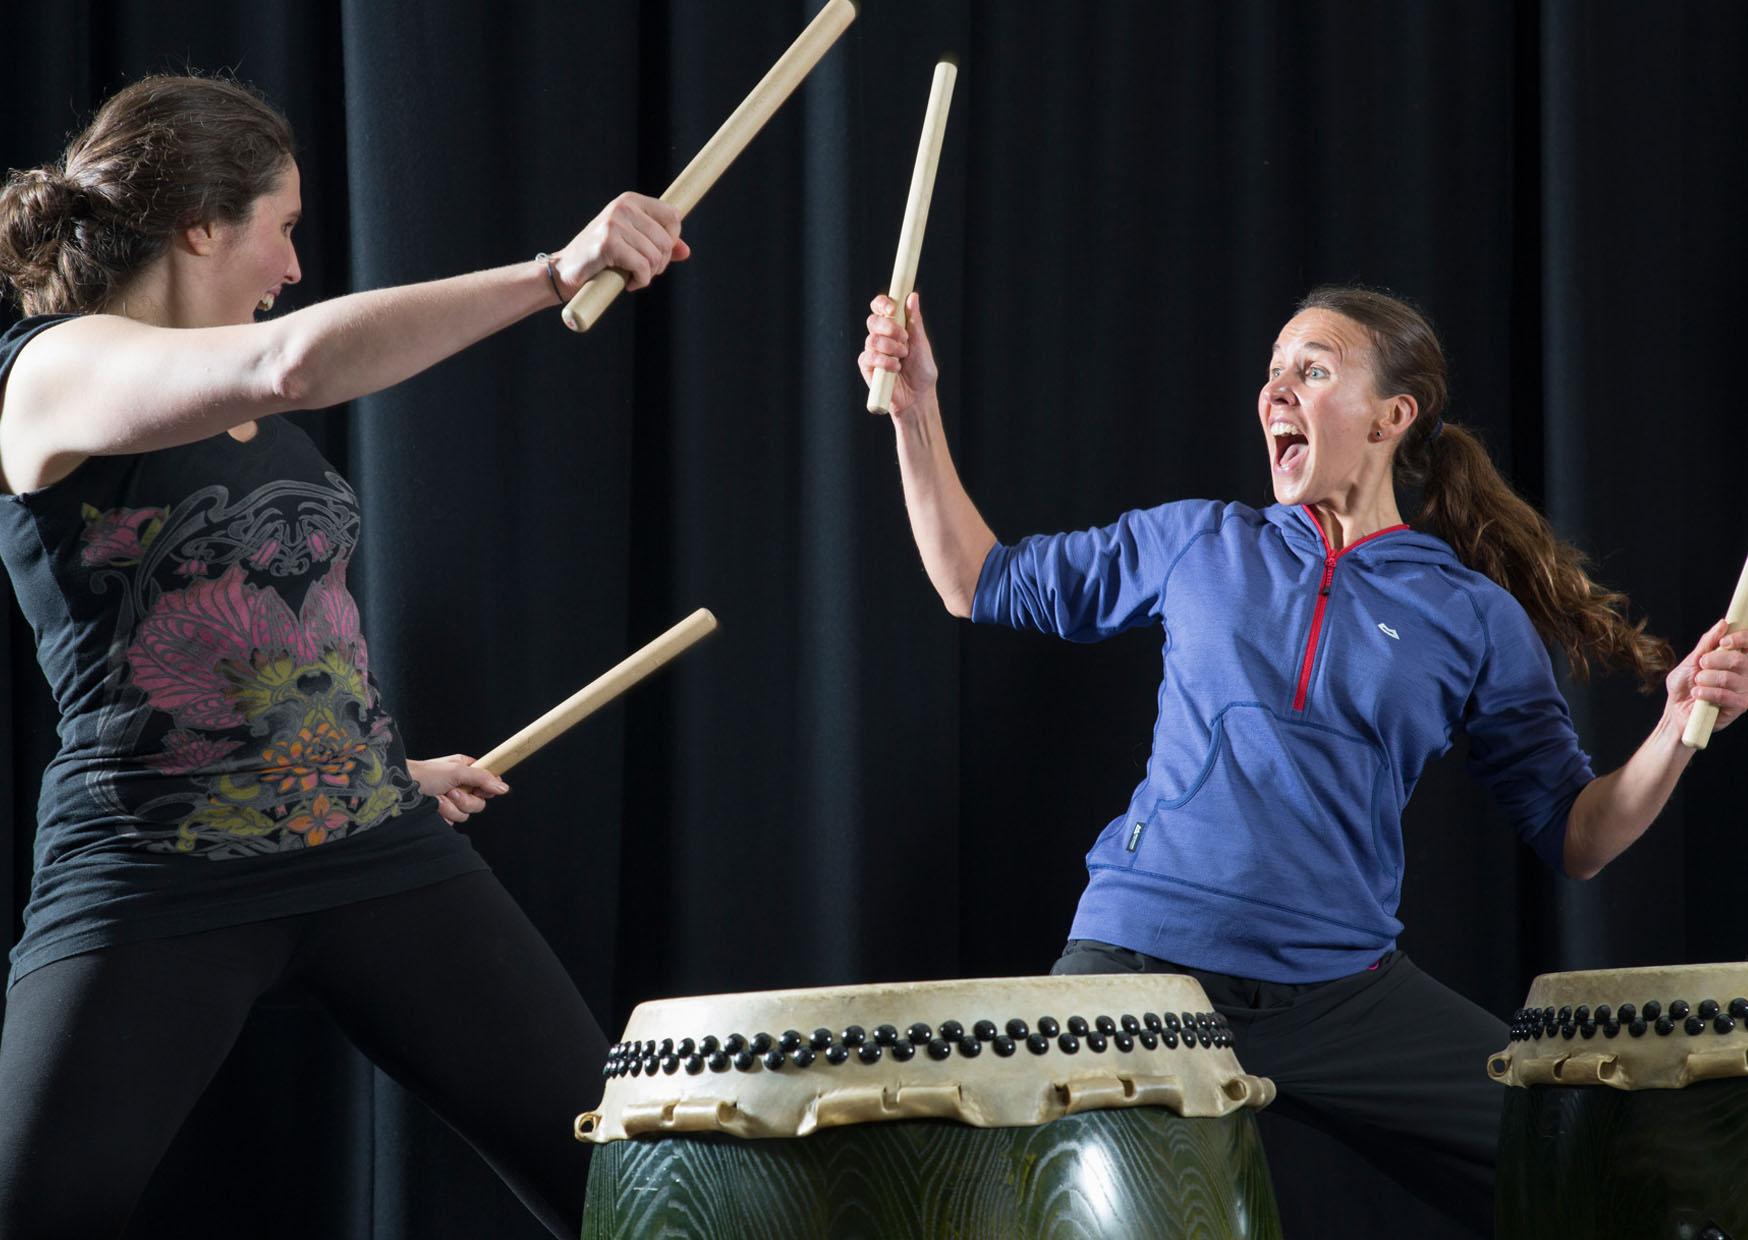 Kagemusha Taiko Workshop